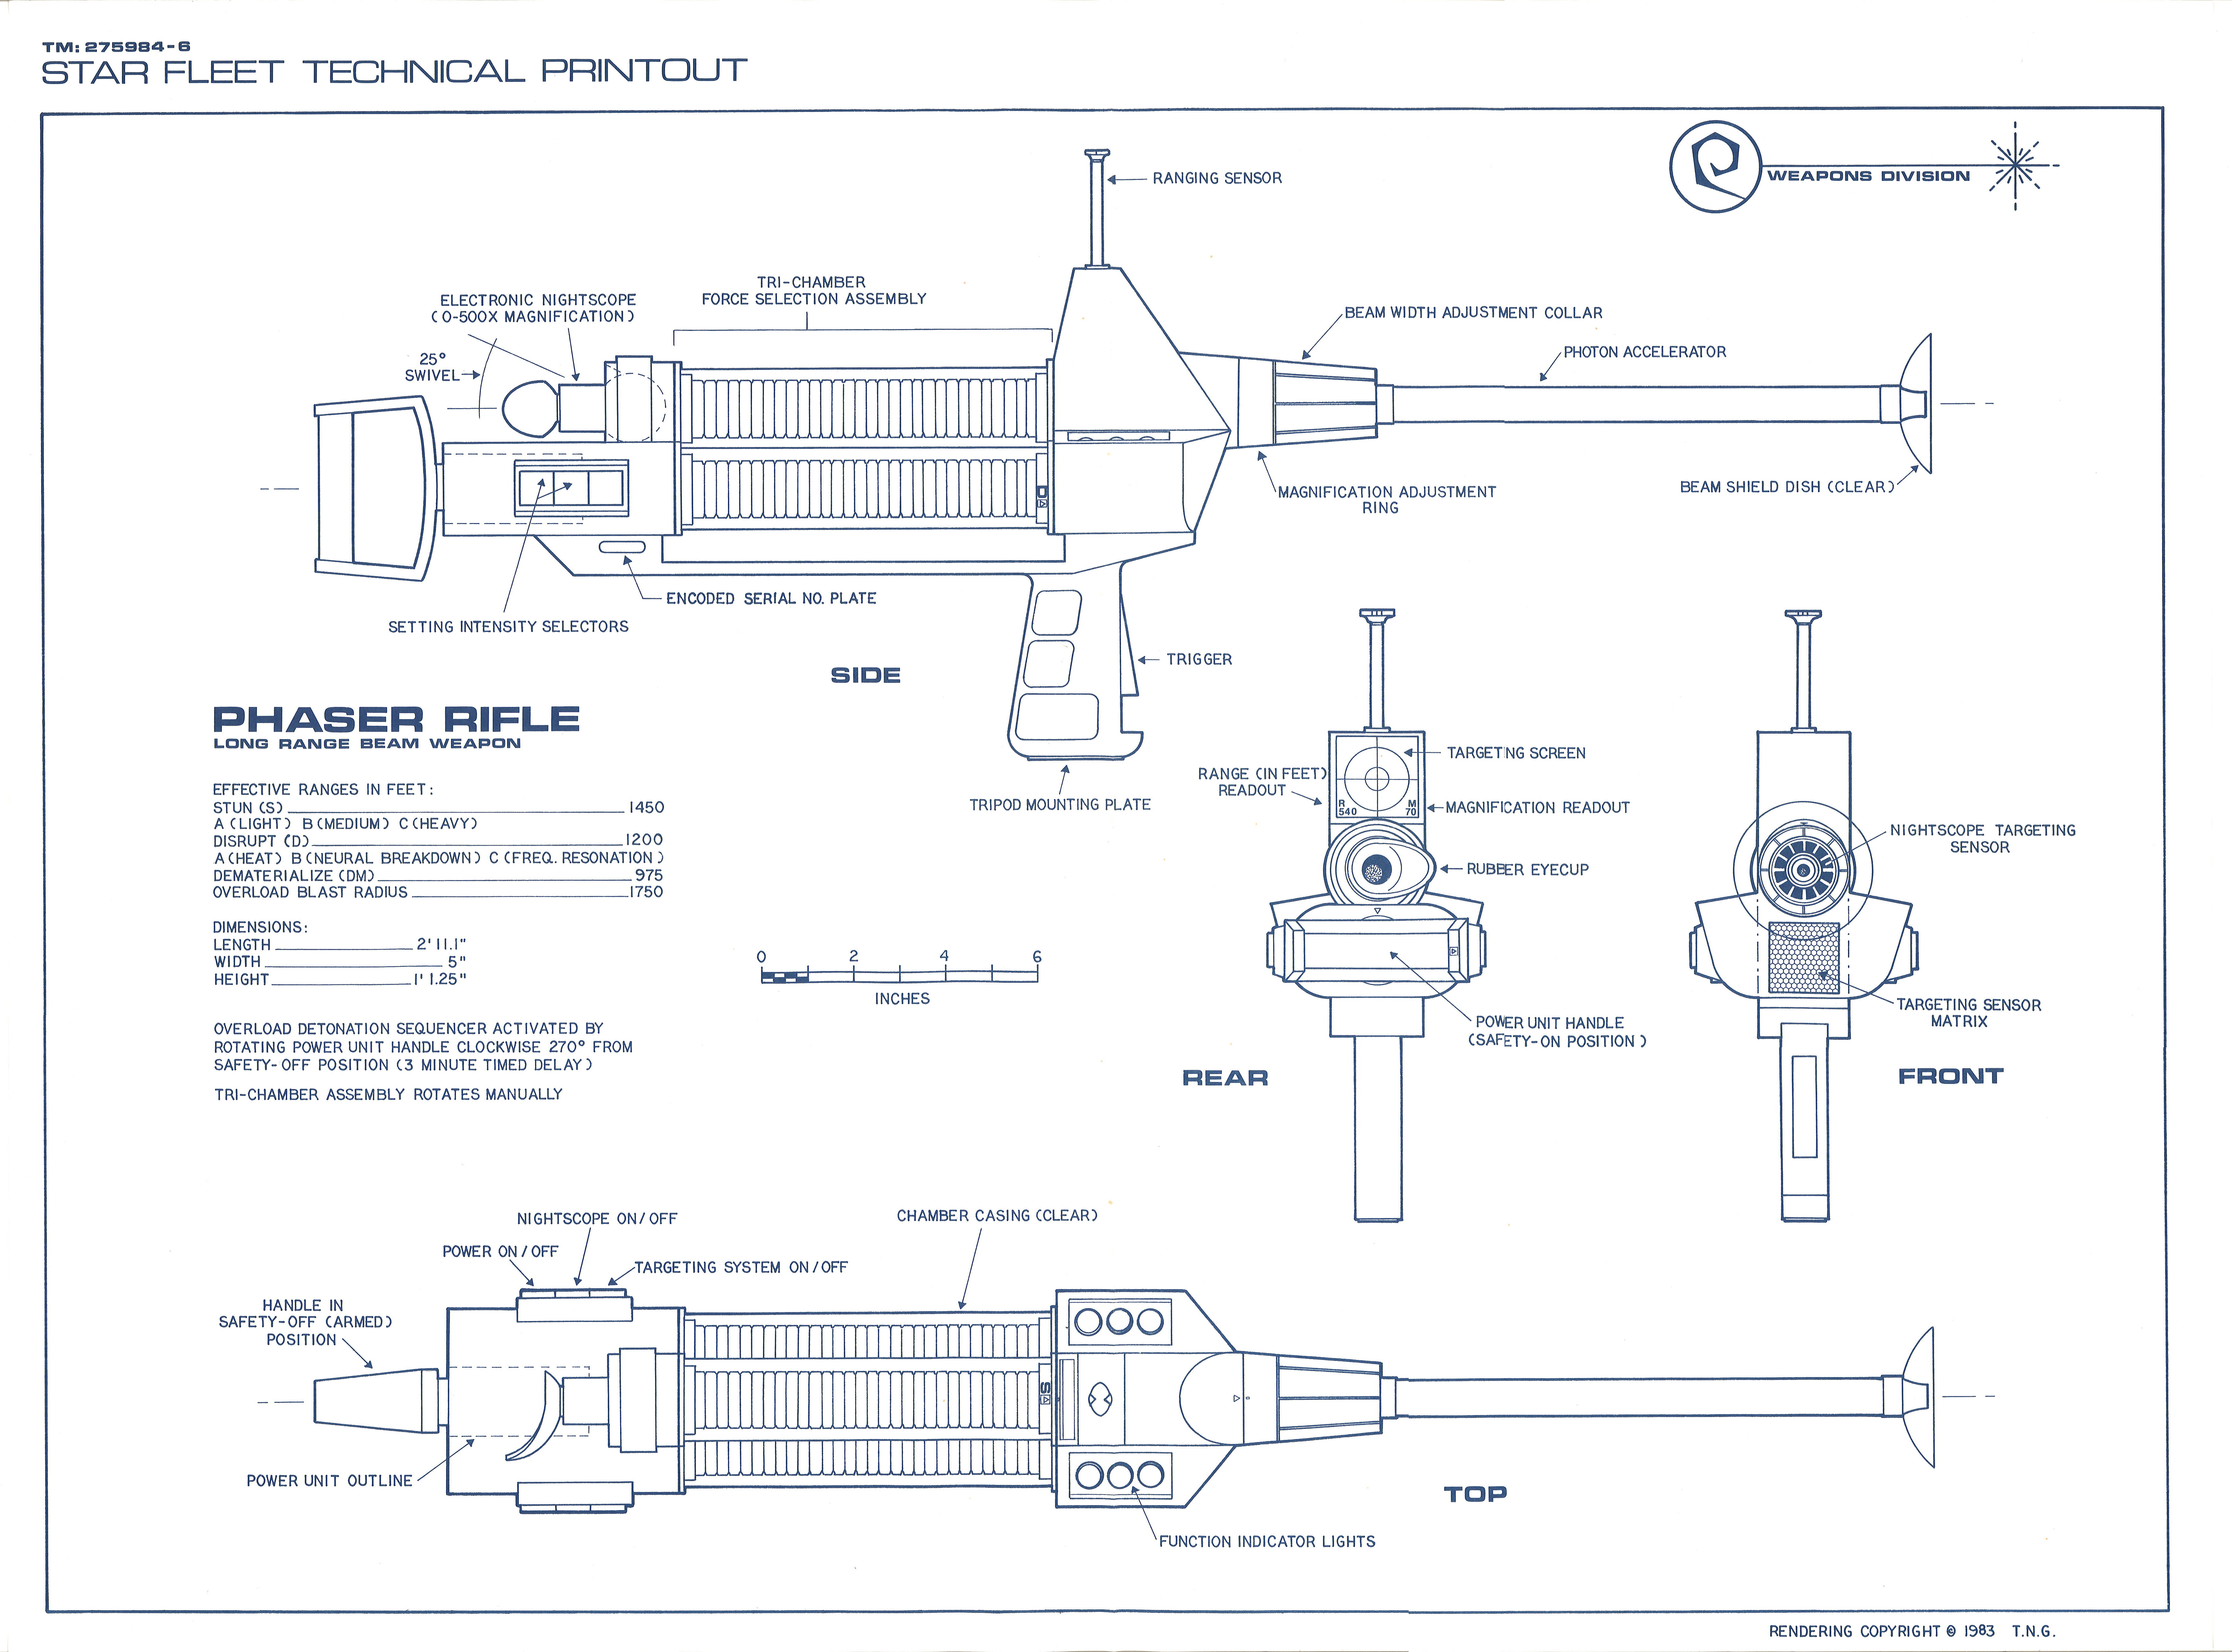 Star trek blueprints weapons and field equipment 1 weapons and field equipment 1 malvernweather Choice Image